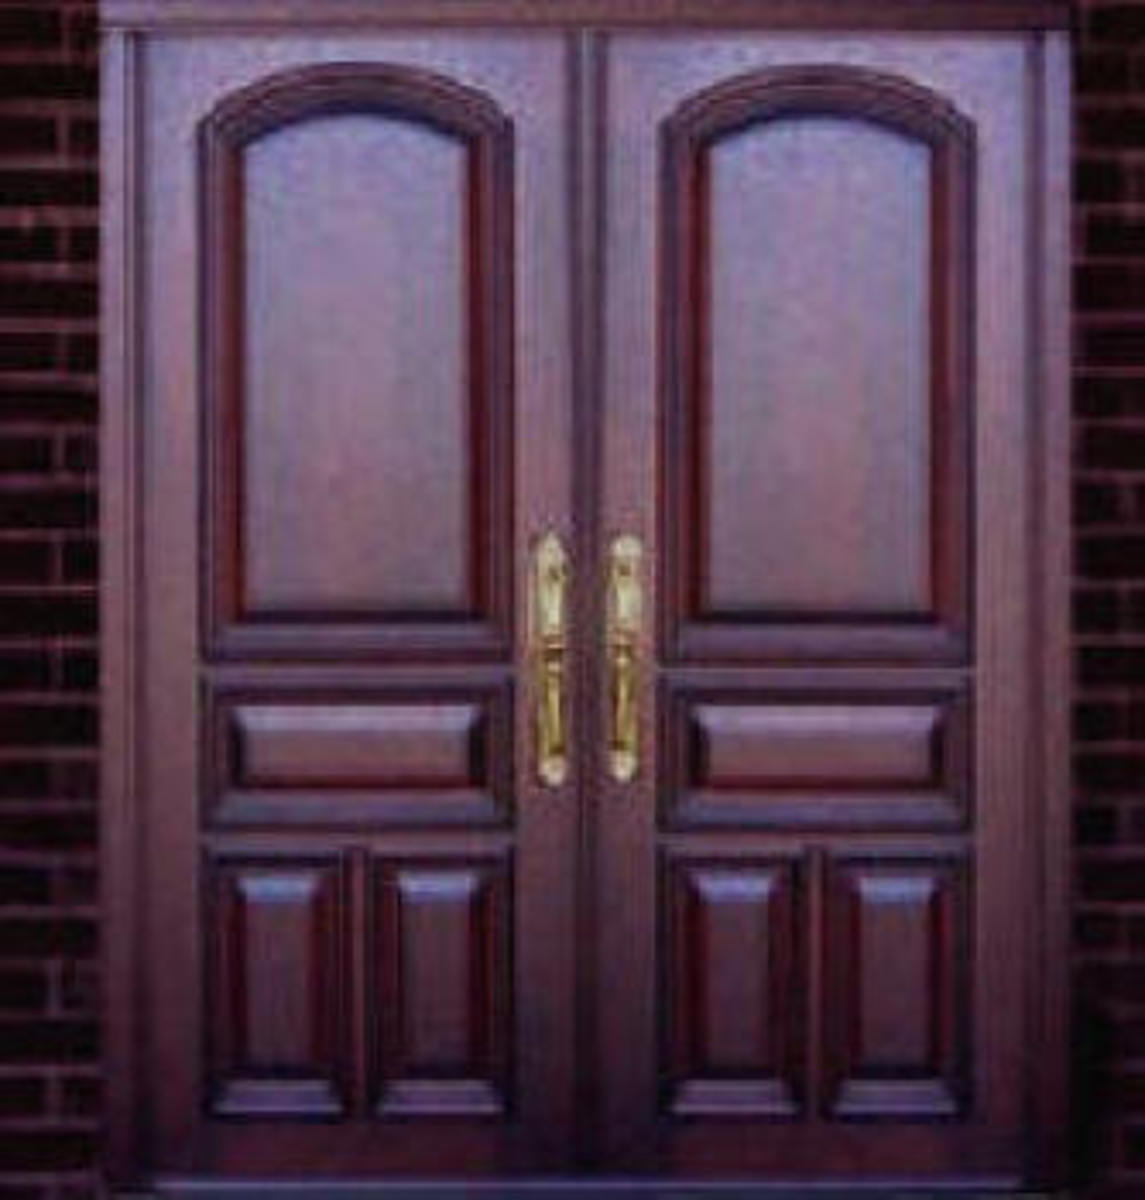 Entry Doors Add to Curb Appeal